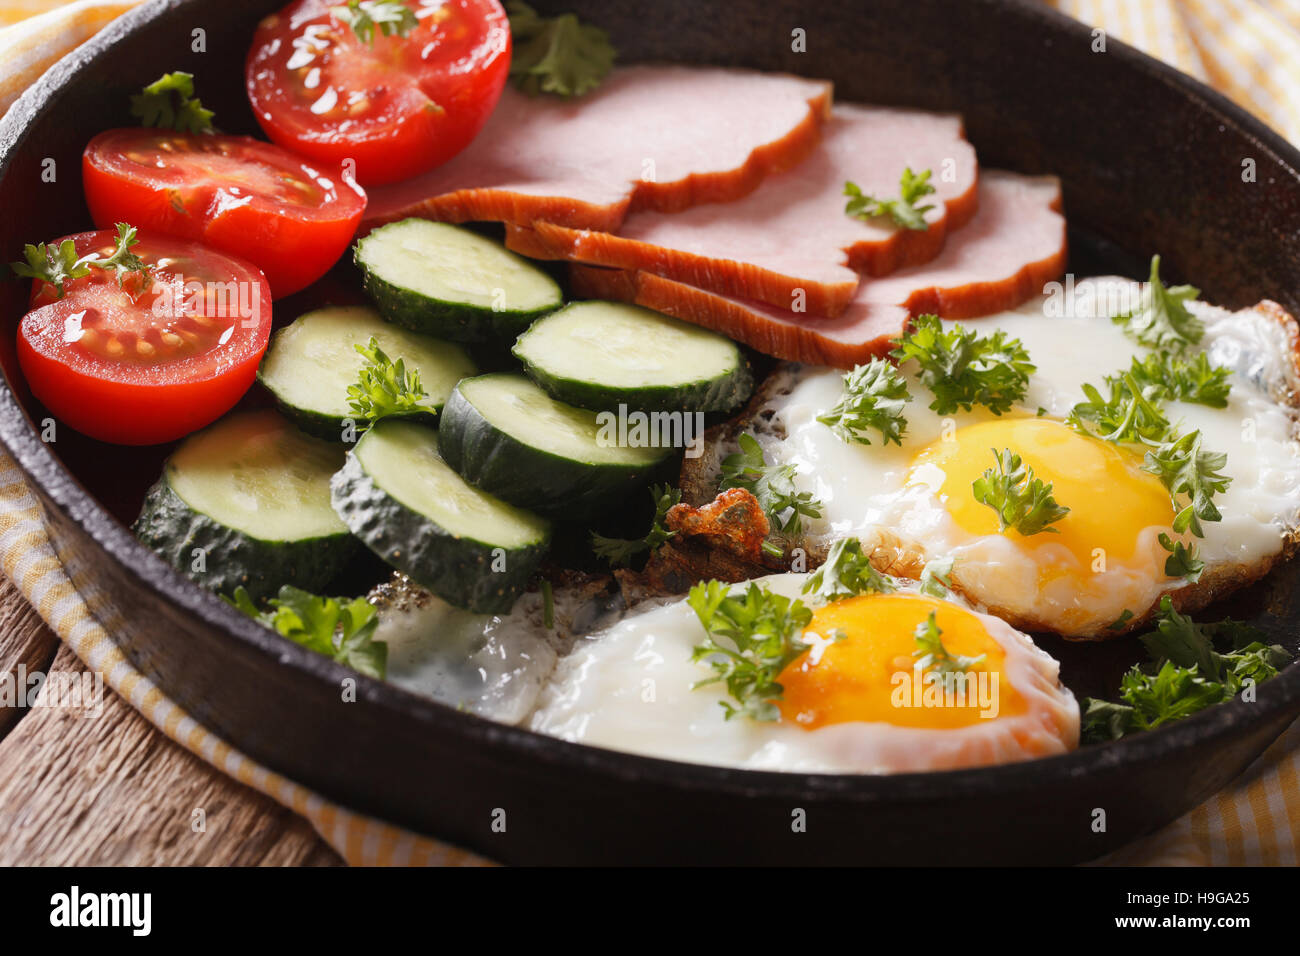 Homemade breakfast: fried eggs with ham and fresh vegetables in a pan close-up. Horizontal - Stock Image